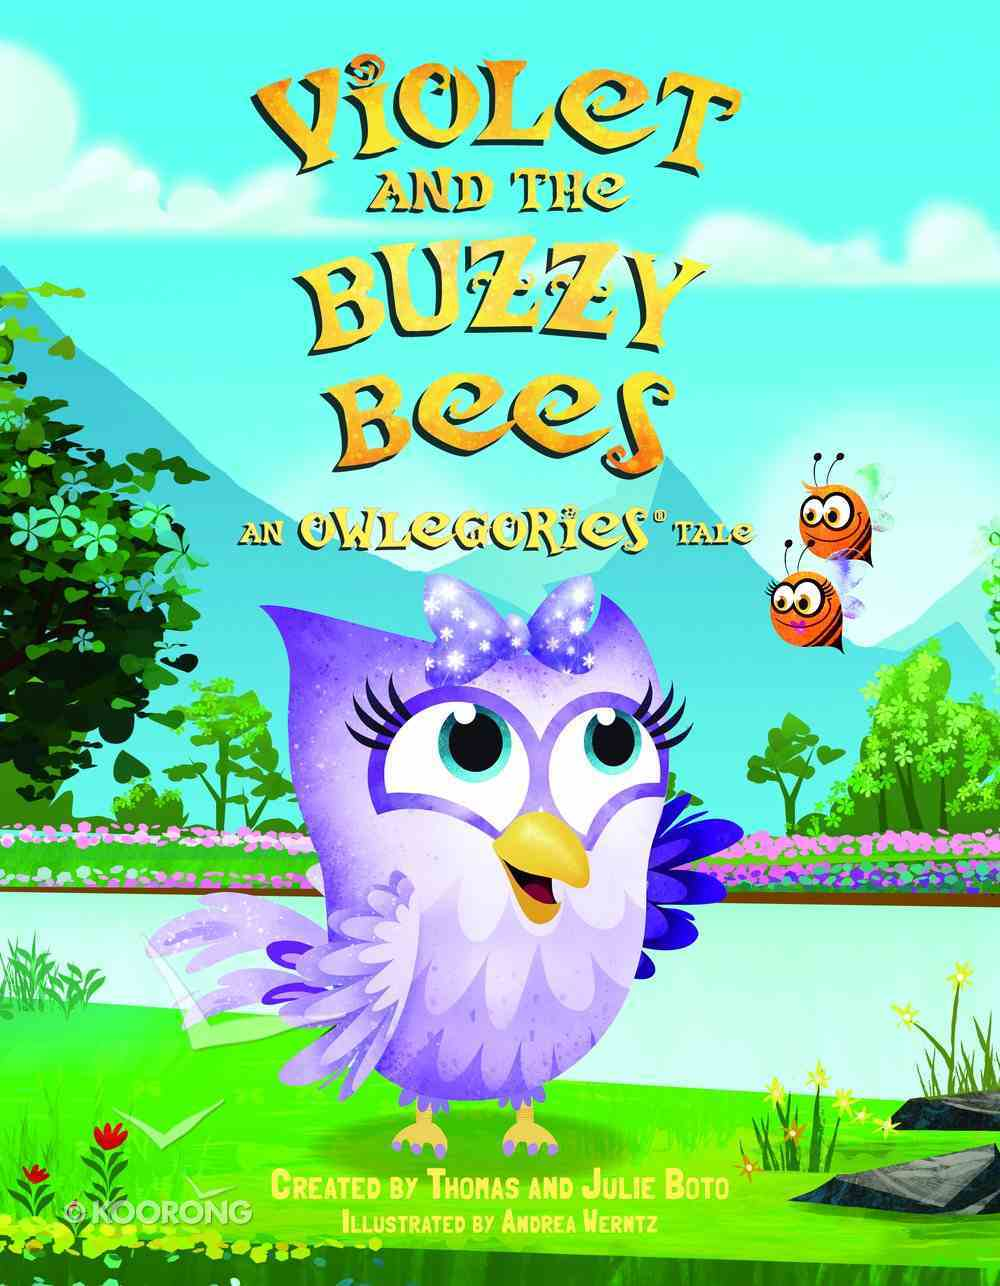 Violet and the Buzzy Bees (An Owlegories Tale Series) Hardback